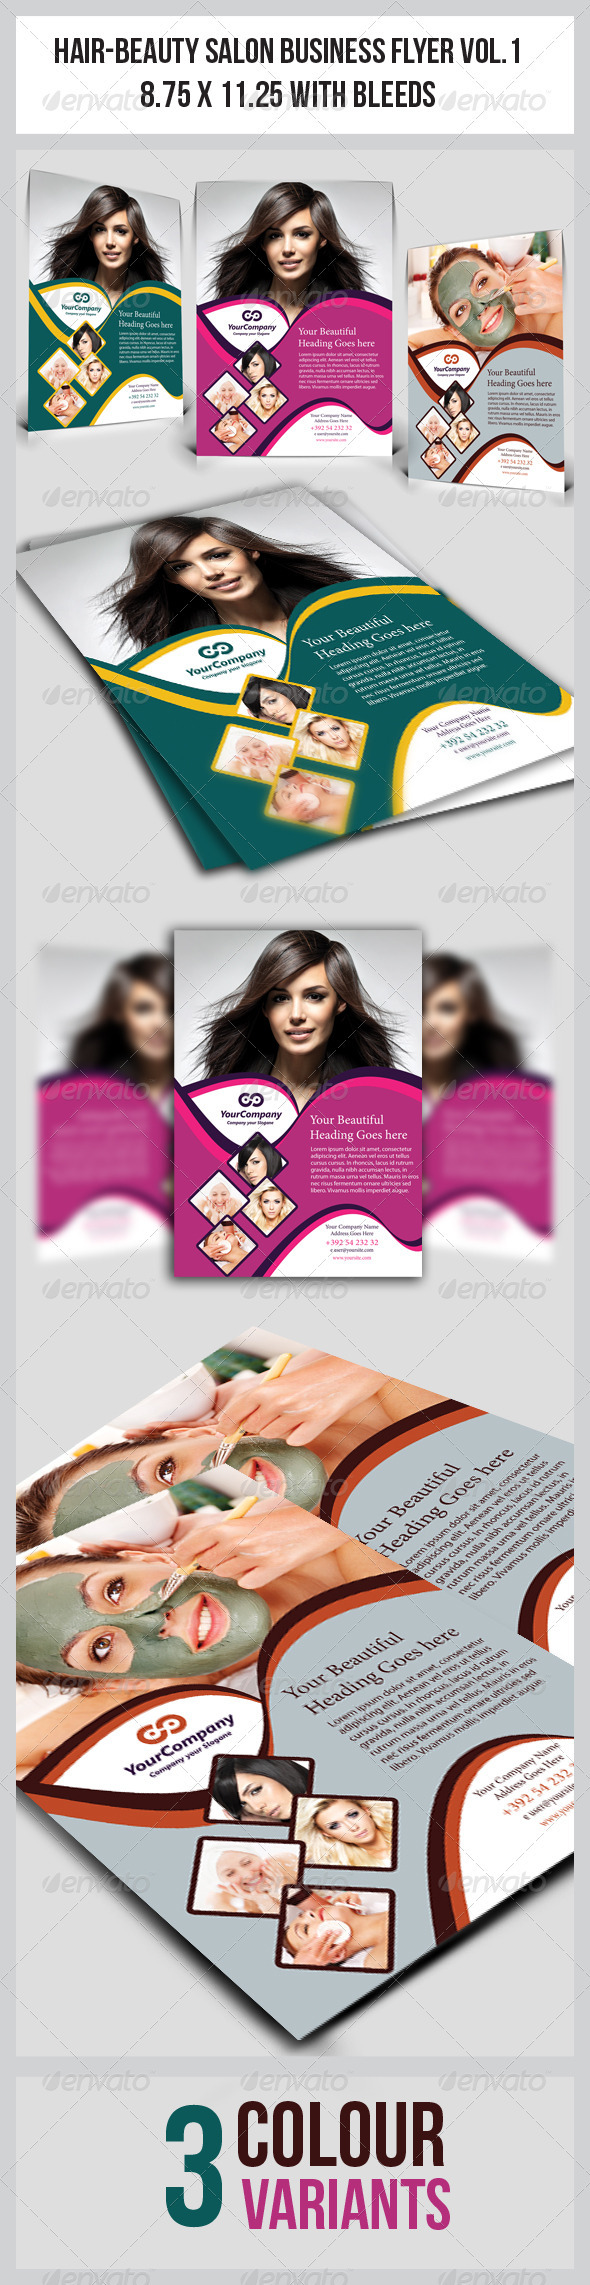 Hair Beauty Salon Business Flyer Vol 1 By Graphicms Graphicriver